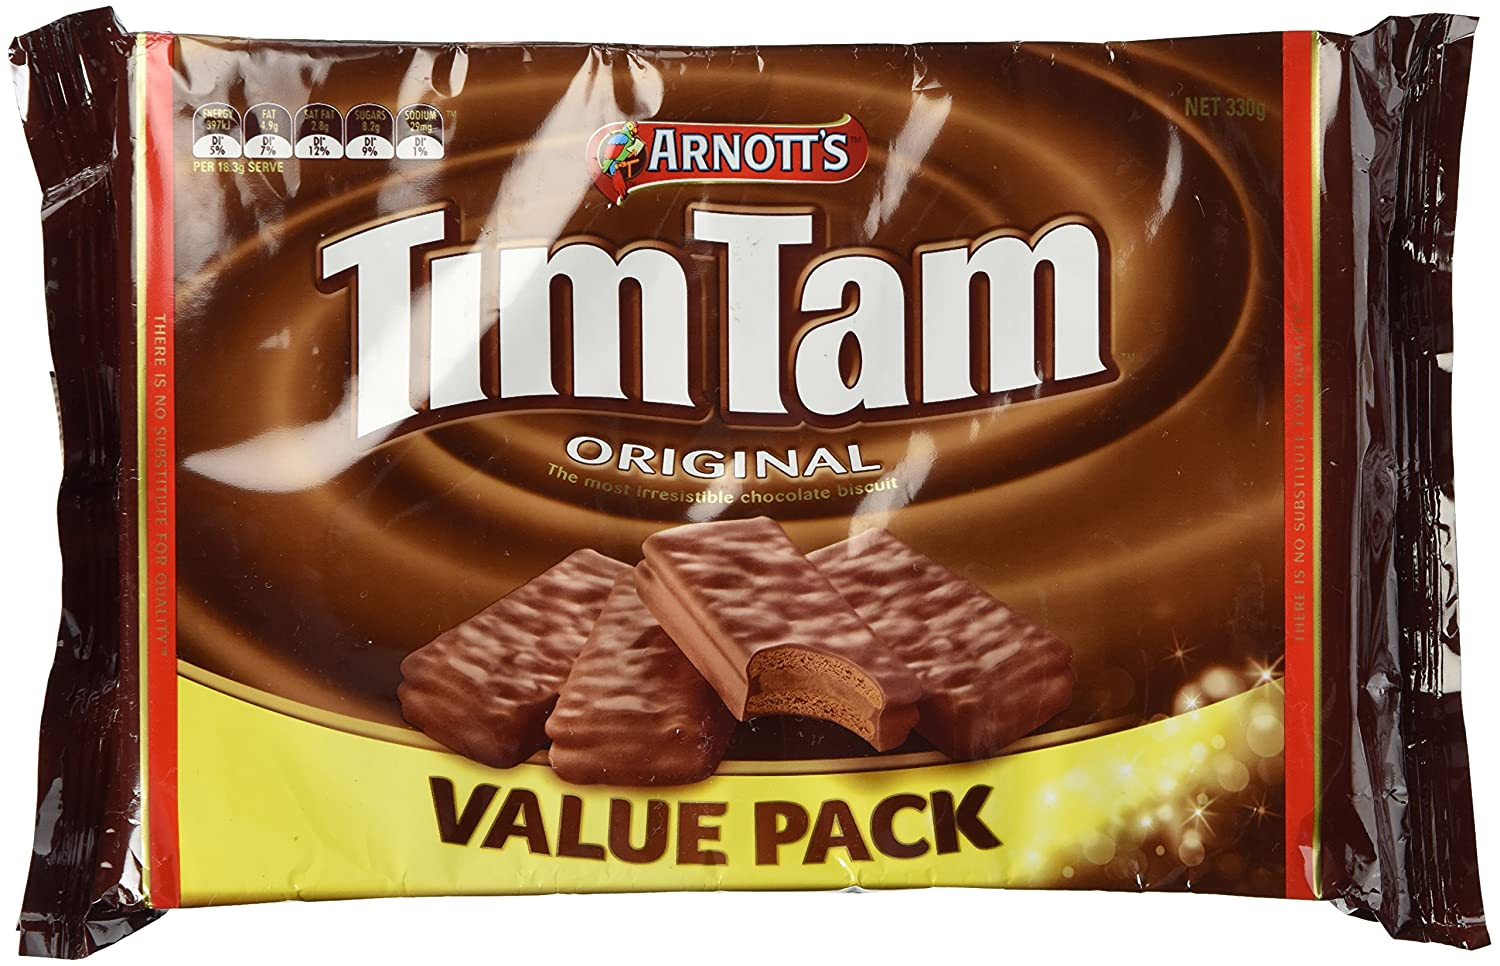 Arnotts Cookie Tim Tam Original